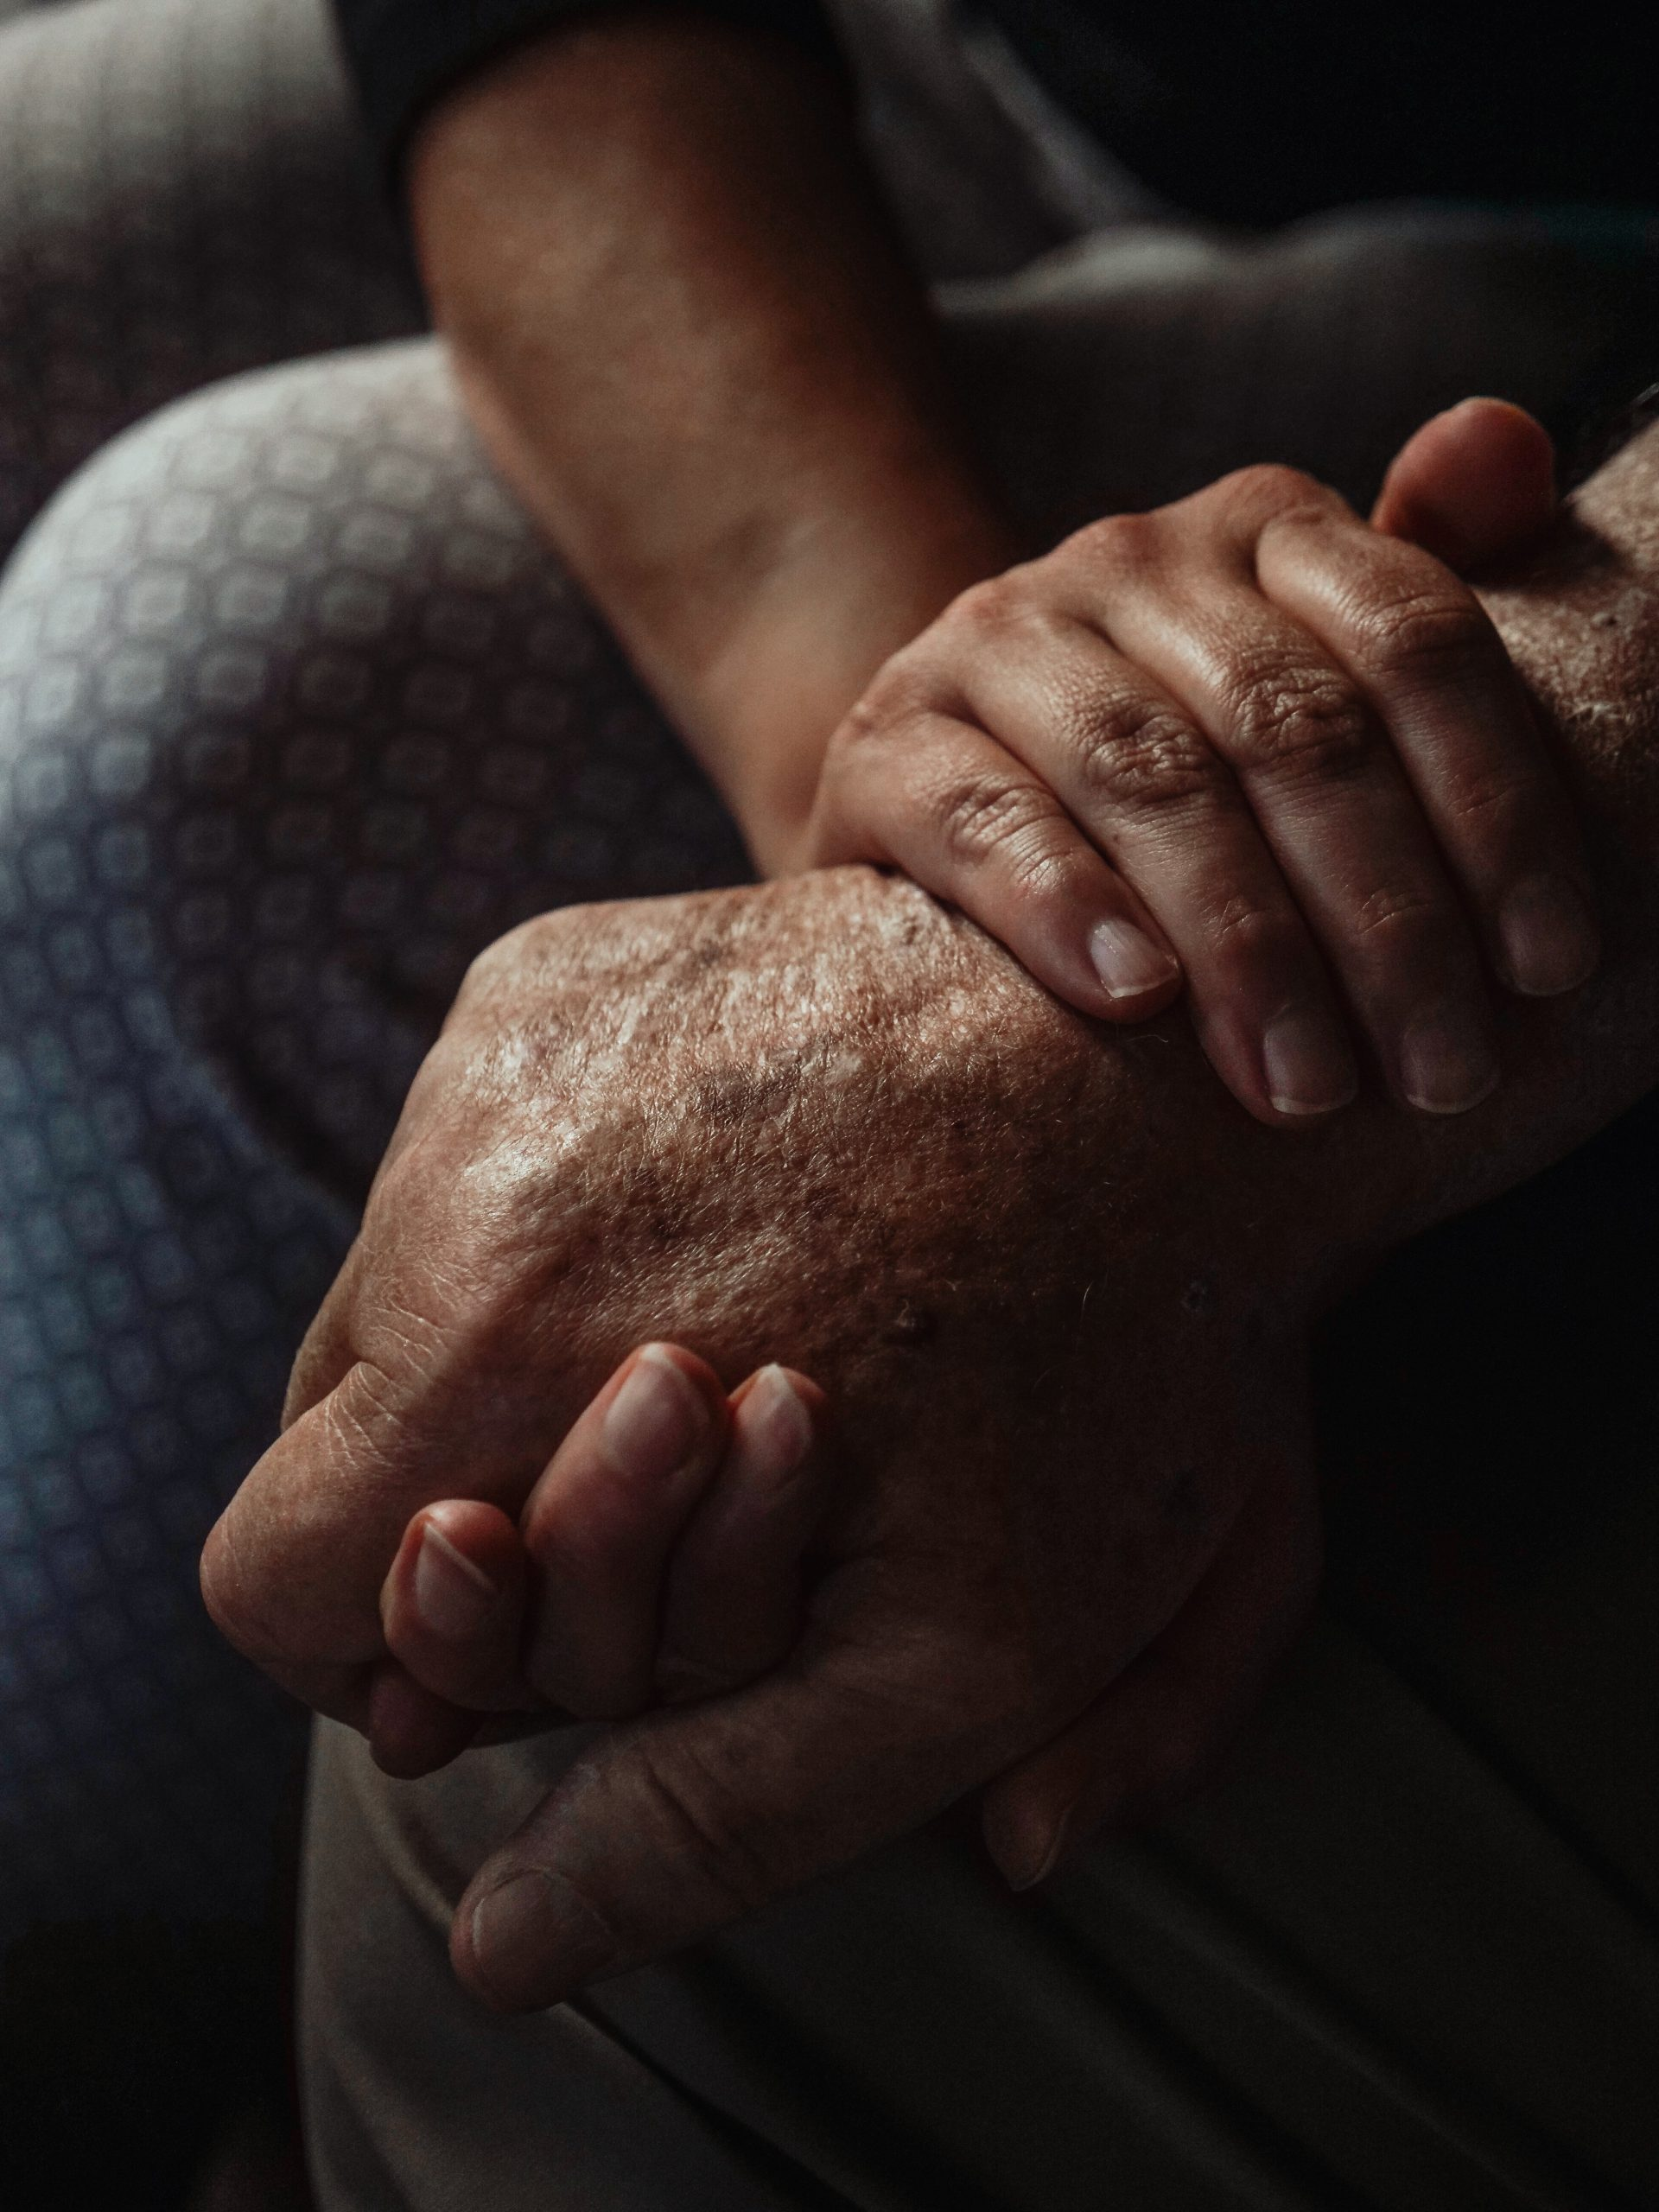 Dementia Care and End of Life Care